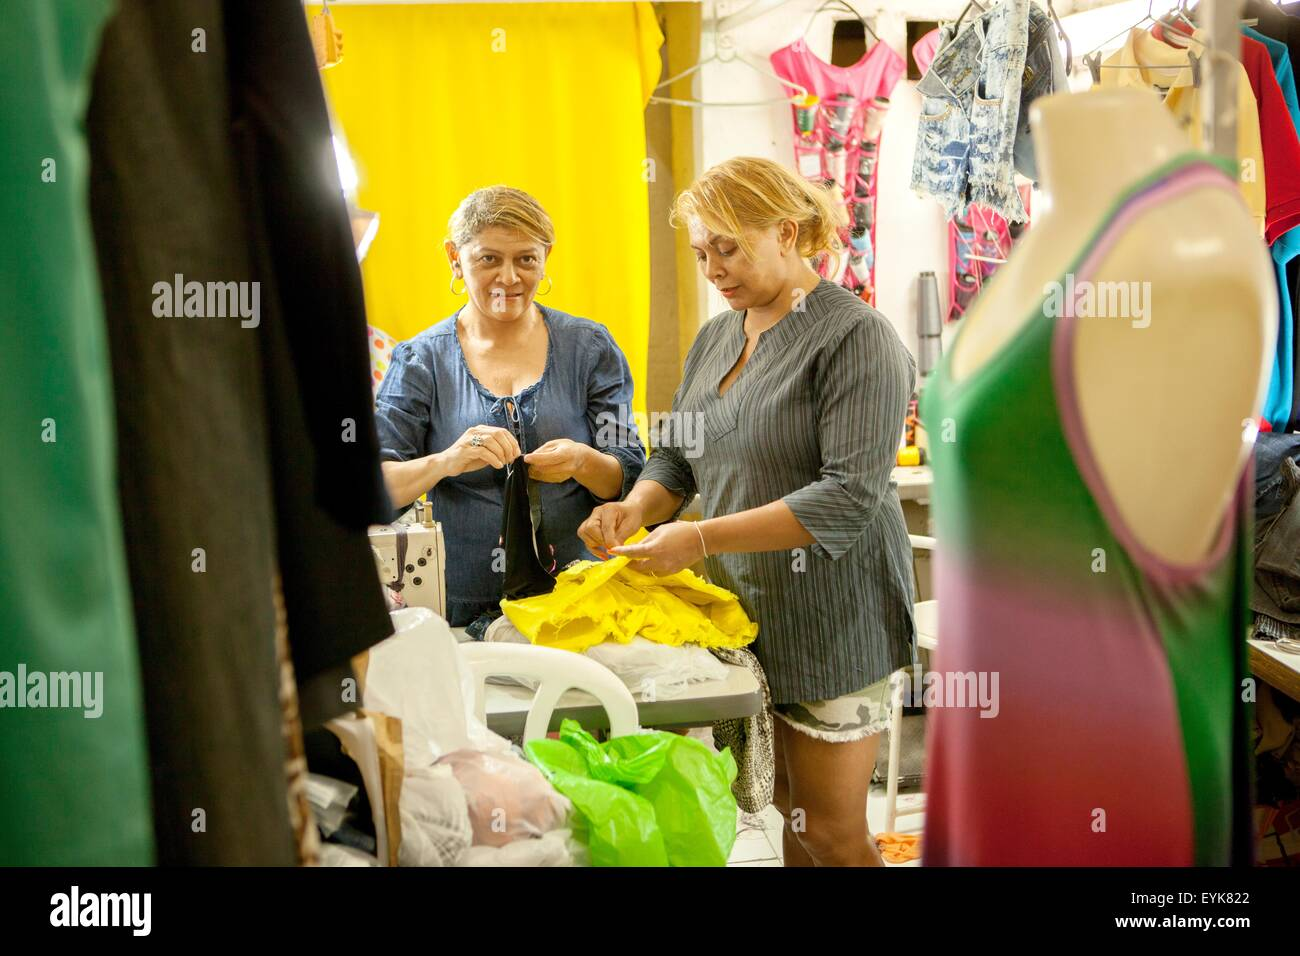 Two seamstresses preparing garments for sewing in workshop - Stock Image